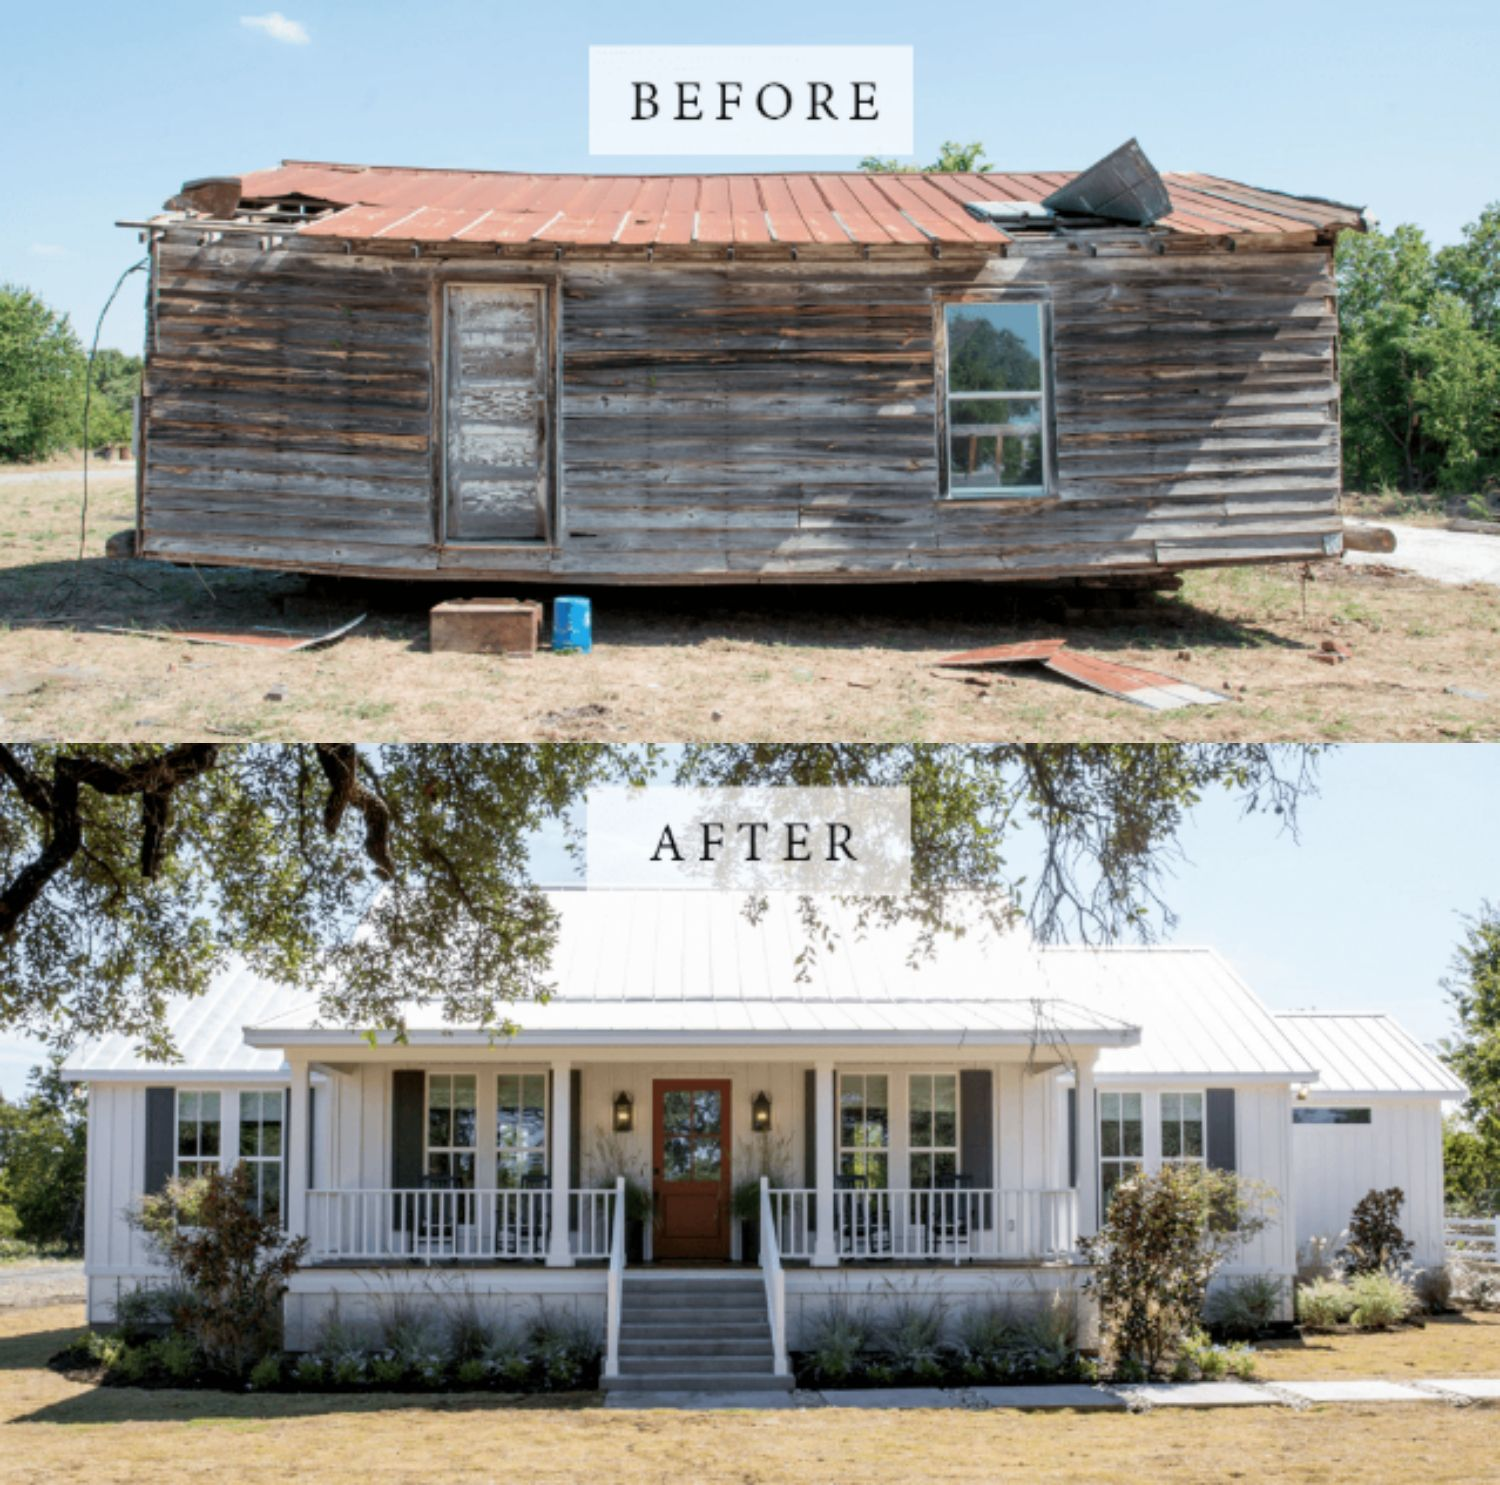 The Little Shack on the Prairie From Season 4 of Fixer Upper is On the Market